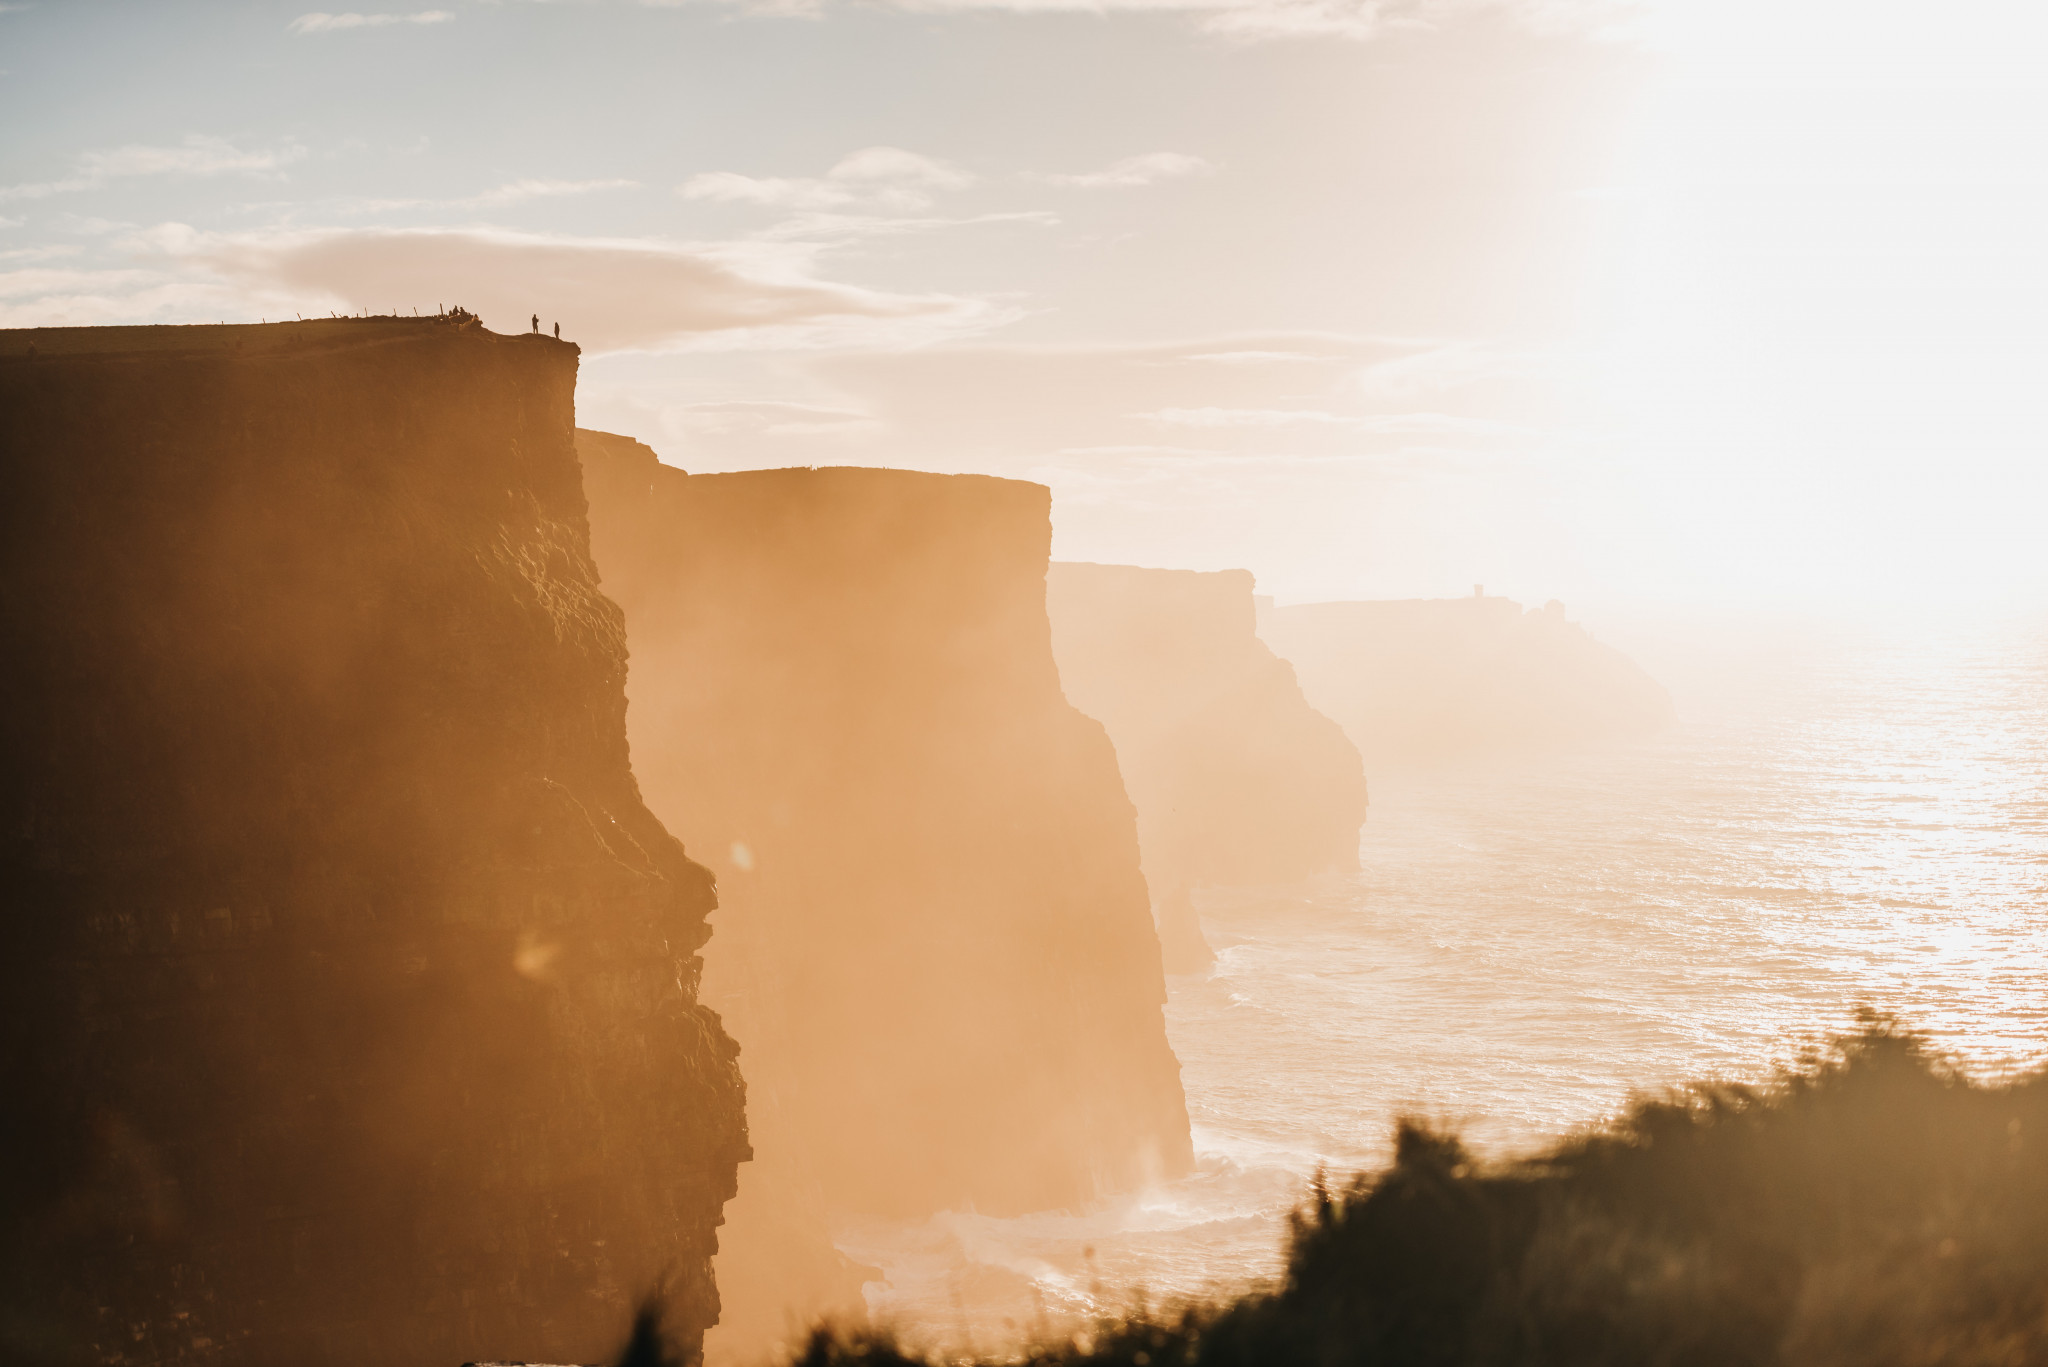 Irland, Baby! – Hello Cliffs of Moher.